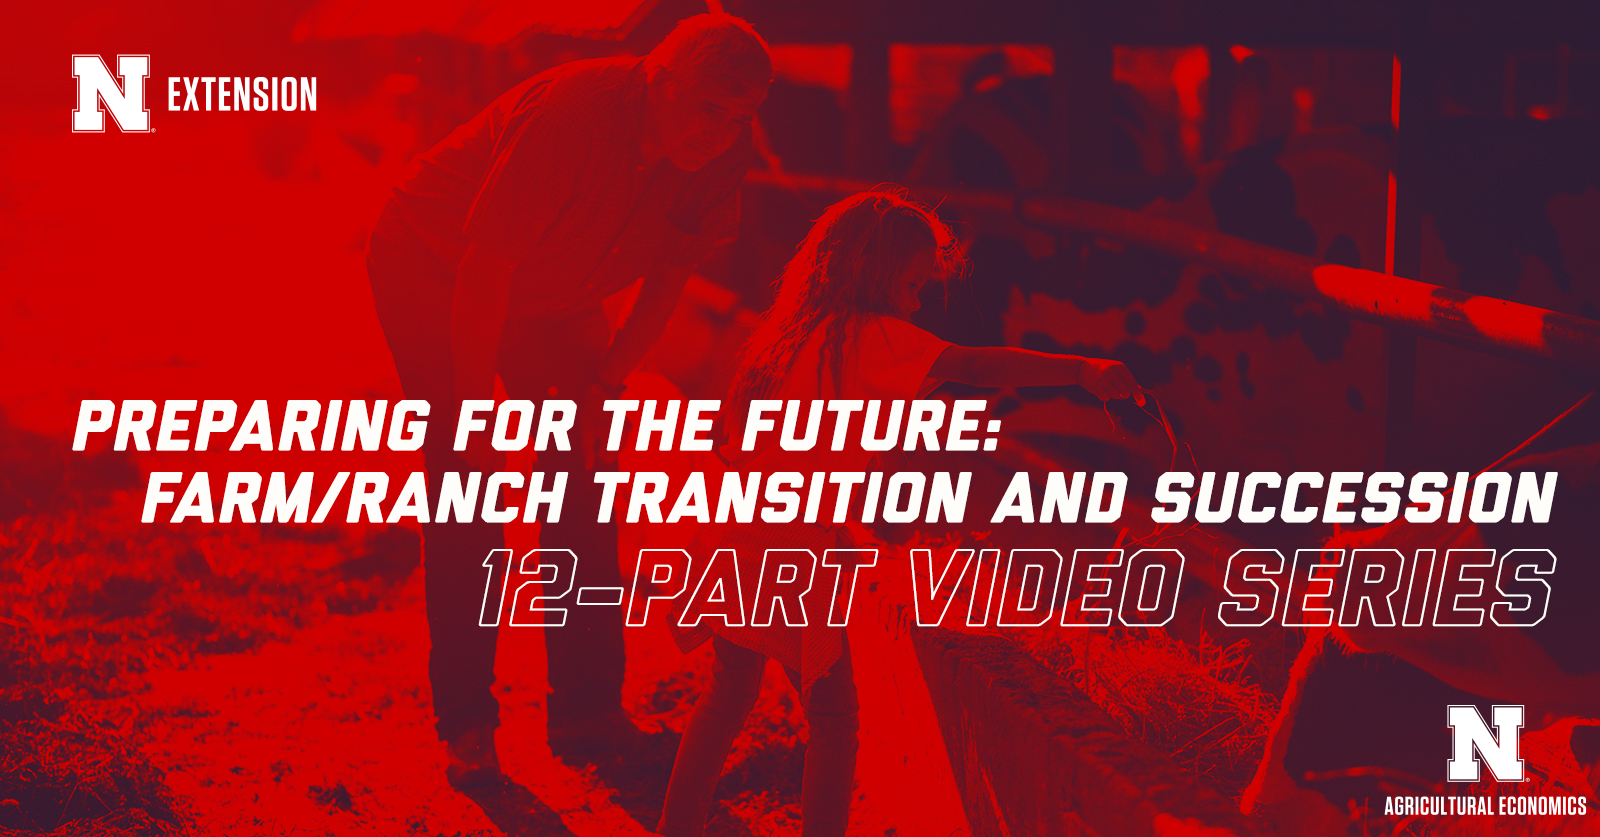 Preparing for the Future: Farm/Ranch Transition and Succession: 12 part video series